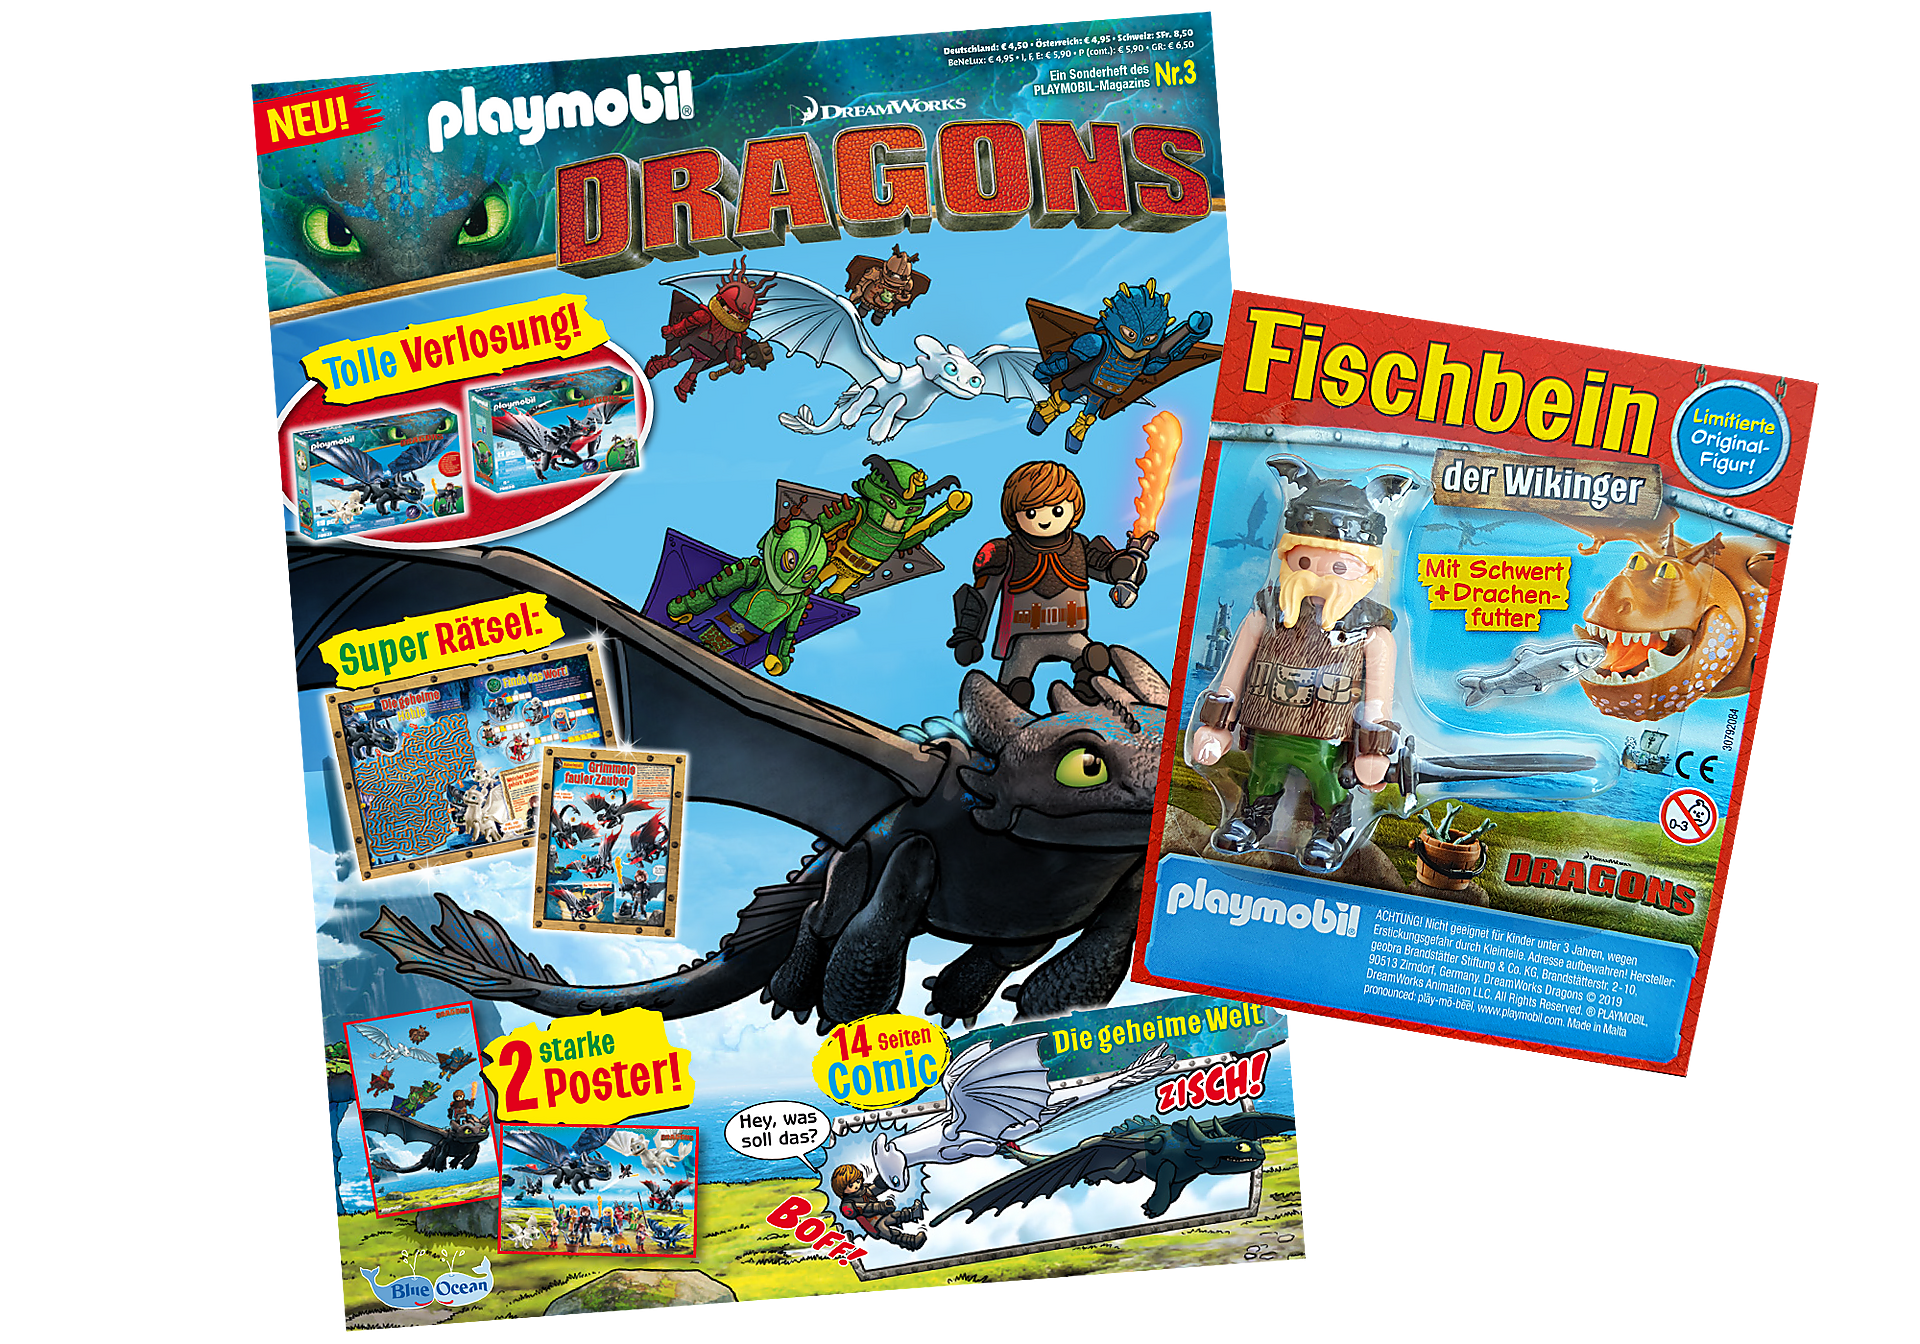 http://media.playmobil.com/i/playmobil/80623_product_detail/PLAYMOBIL-Magazin Sonderausgabe Dragons 2019